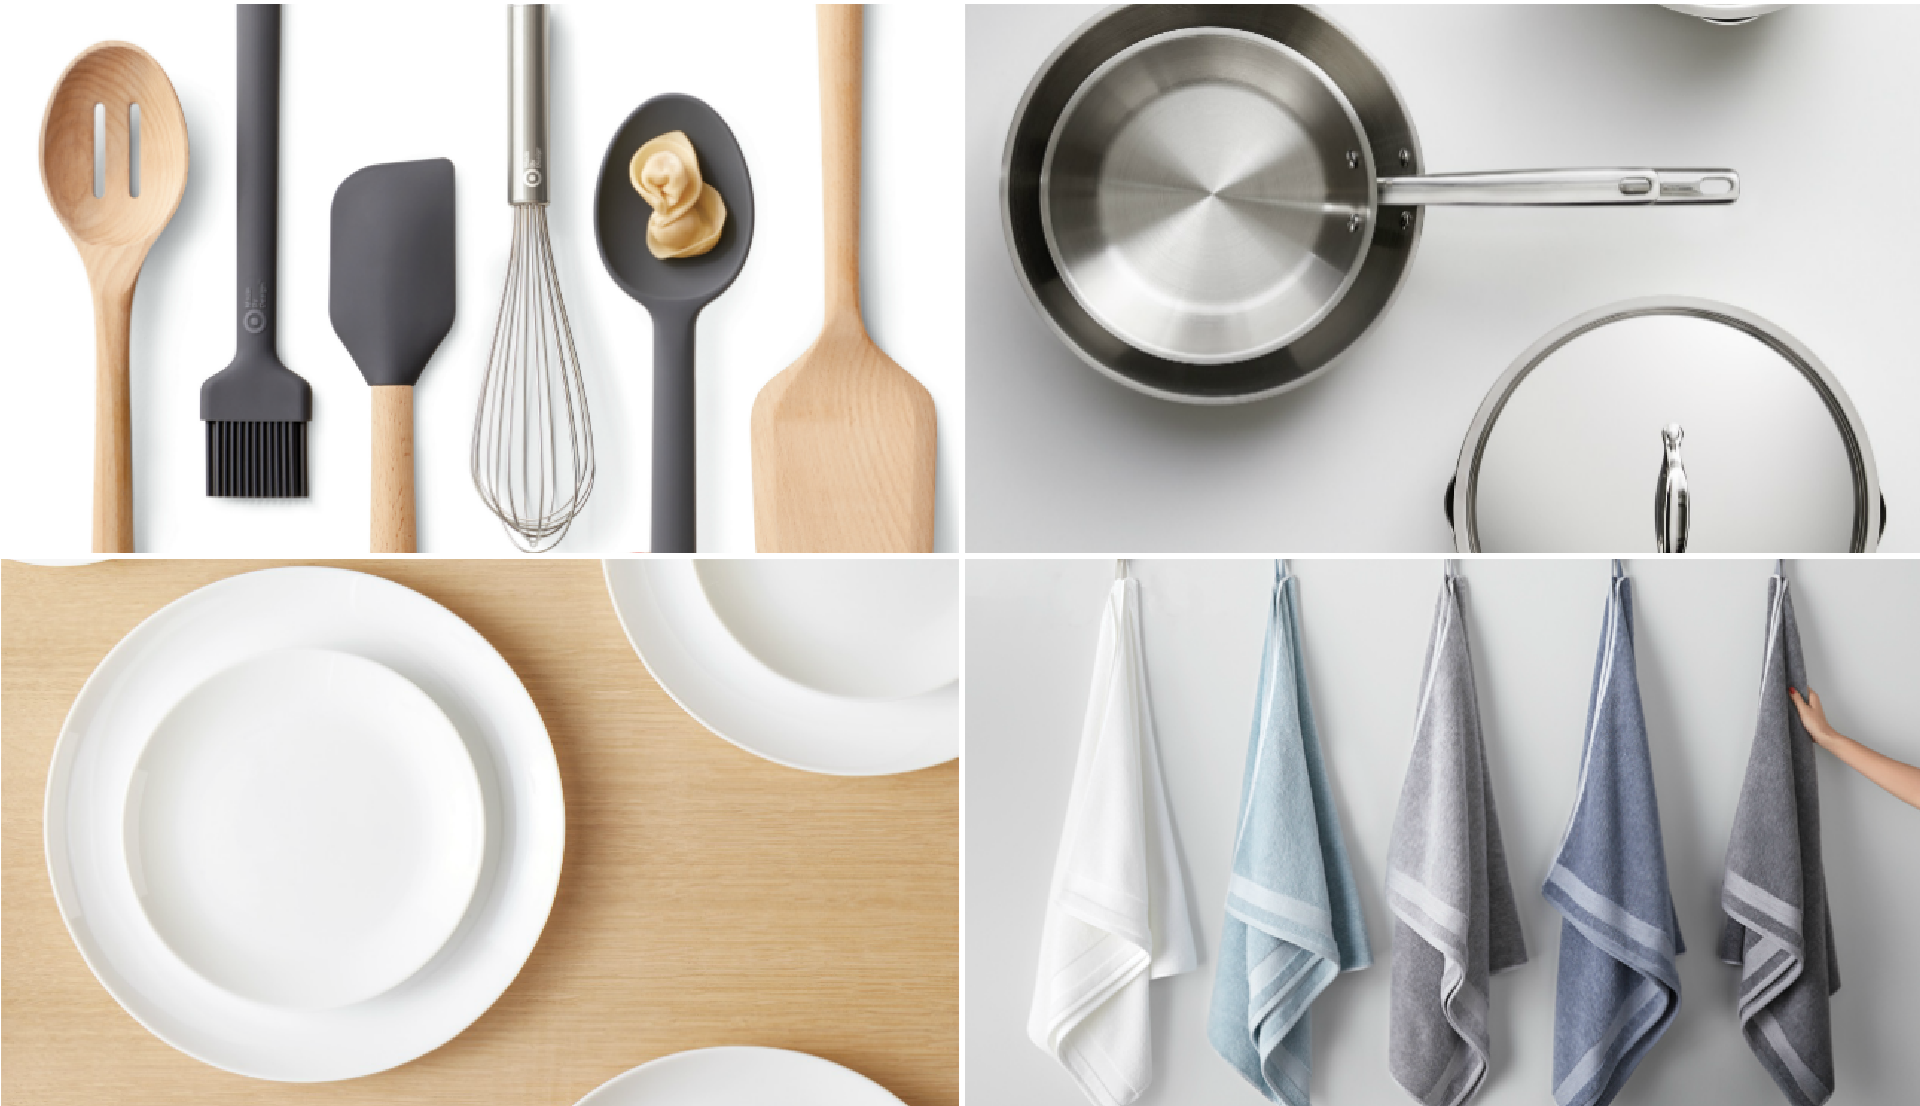 Target launching design-focused home brand to bring better ...